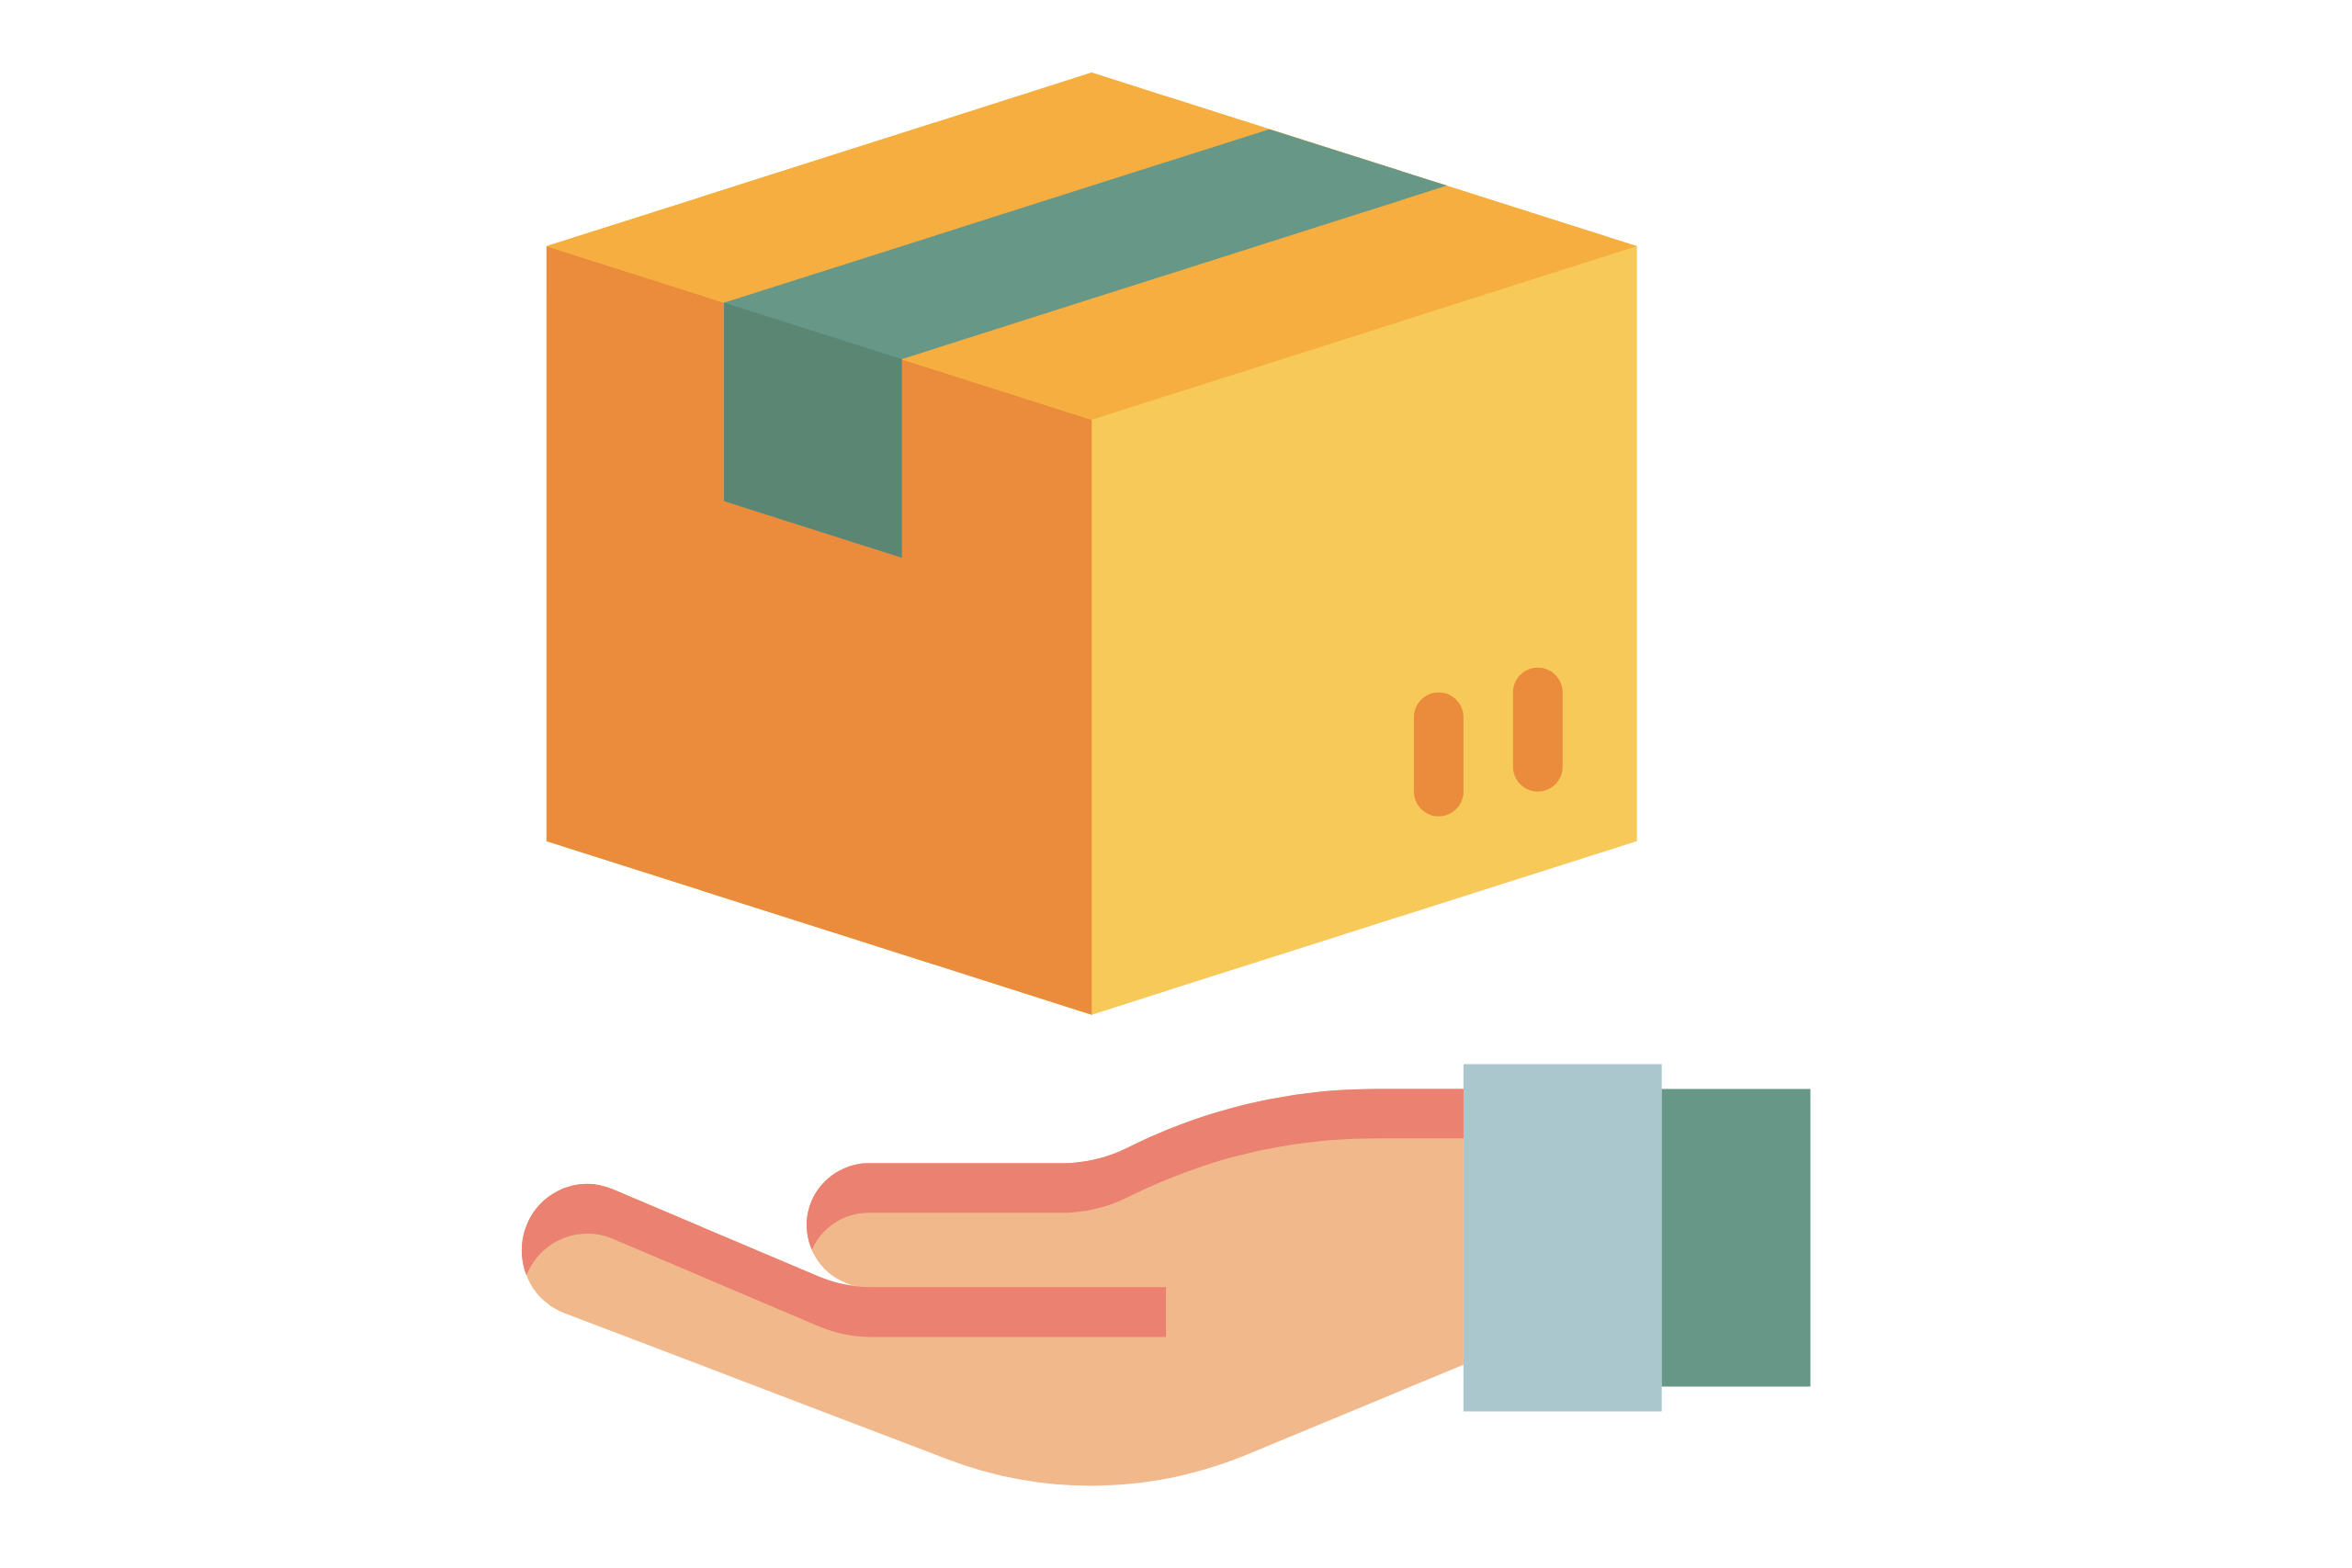 delivery box hand